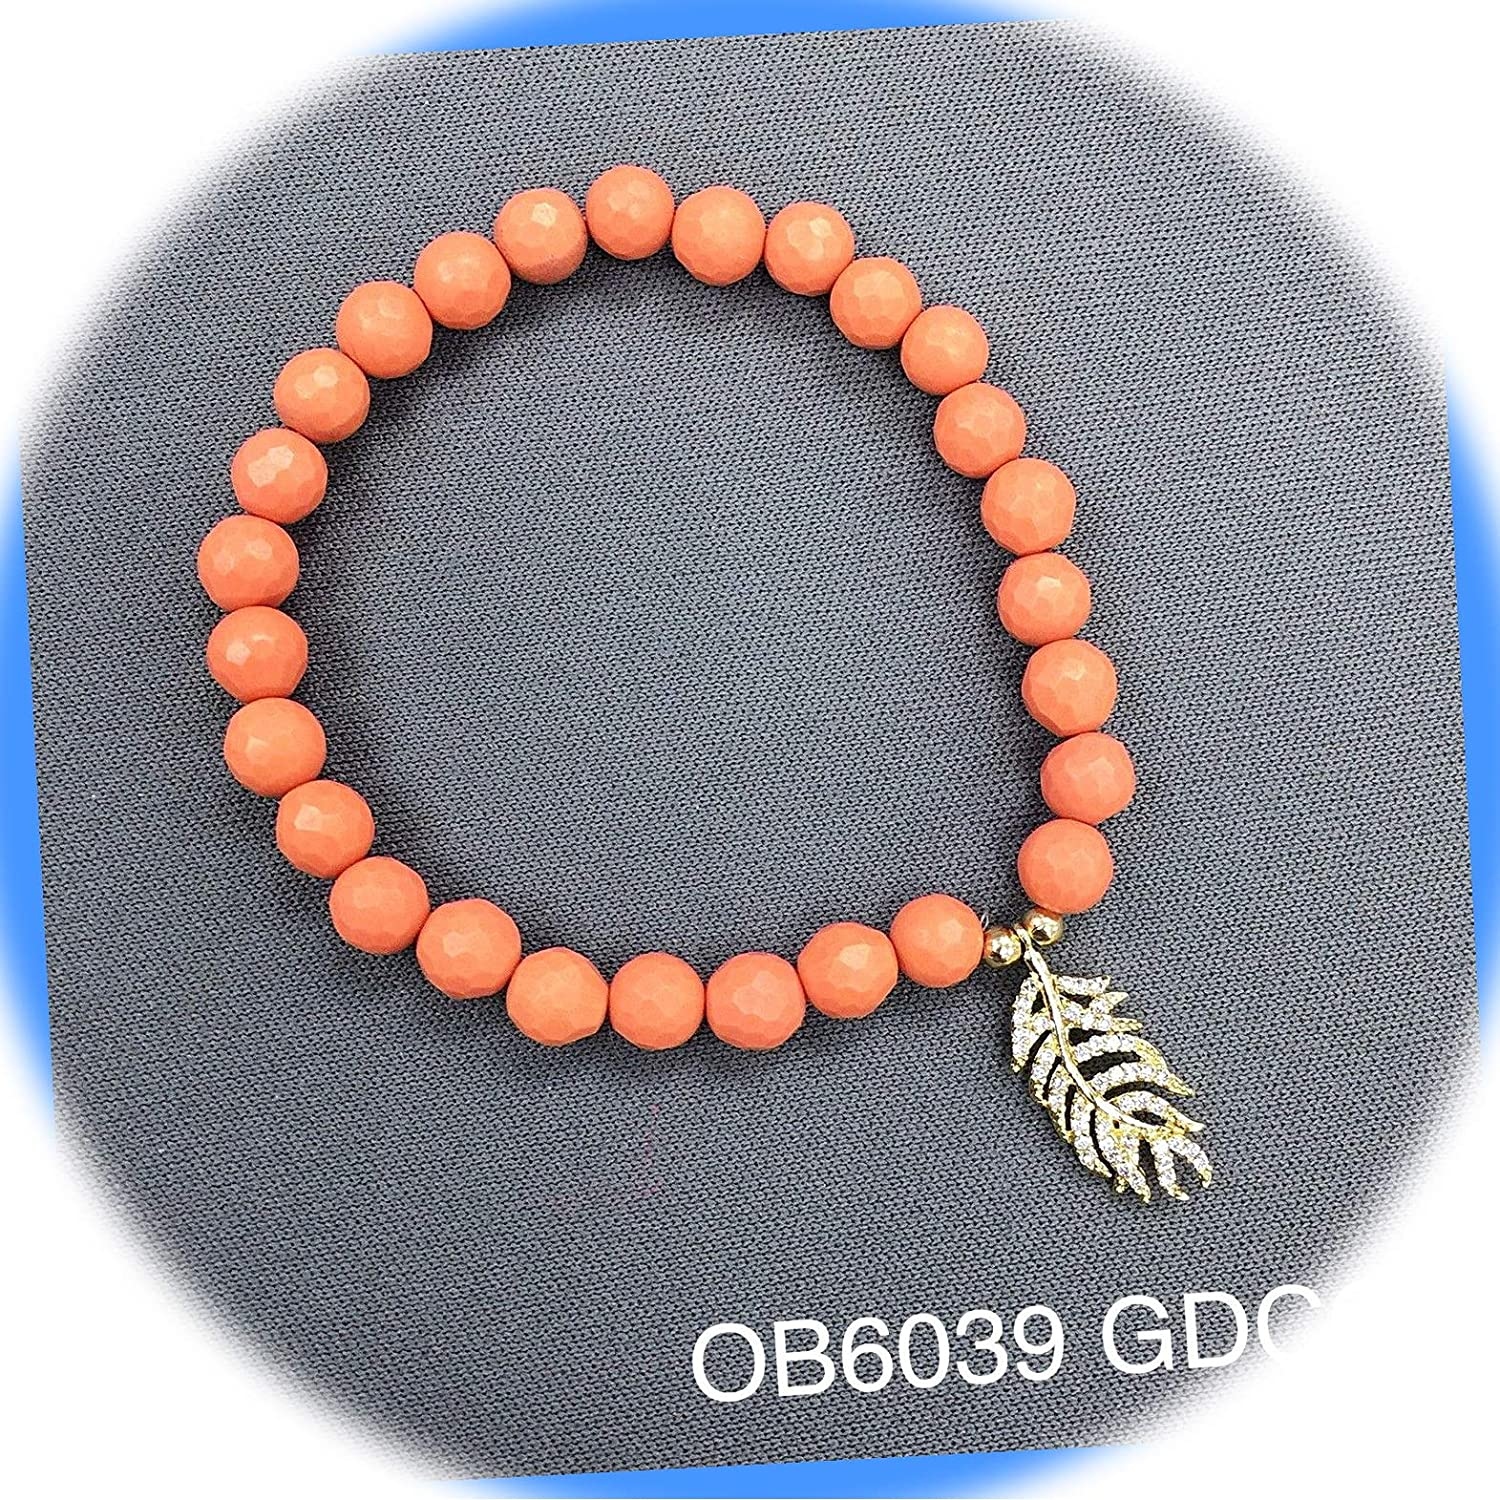 New Coral Beaded Semi-Precious Cubic Ranking TOP19 Feather Charm Zirconia Stre Detroit Mall